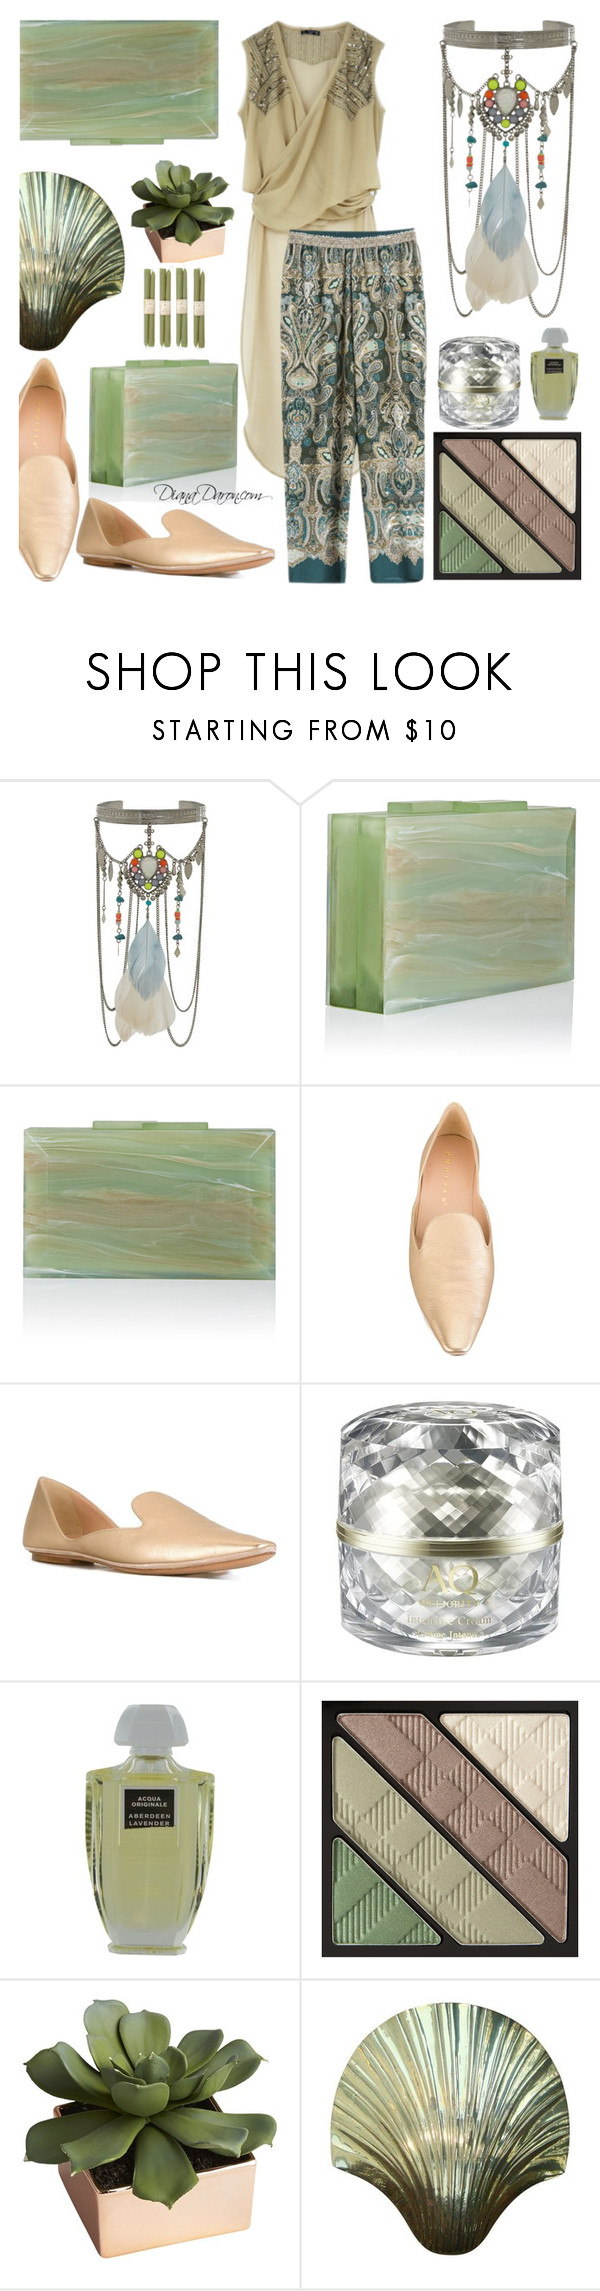 """""""Green"""" by dianadaron ❤ liked on Polyvore featuring Bershka, Oysho, New Look, Rauwolf, Unützer, Decorté, Creed, Burberry and CB2"""